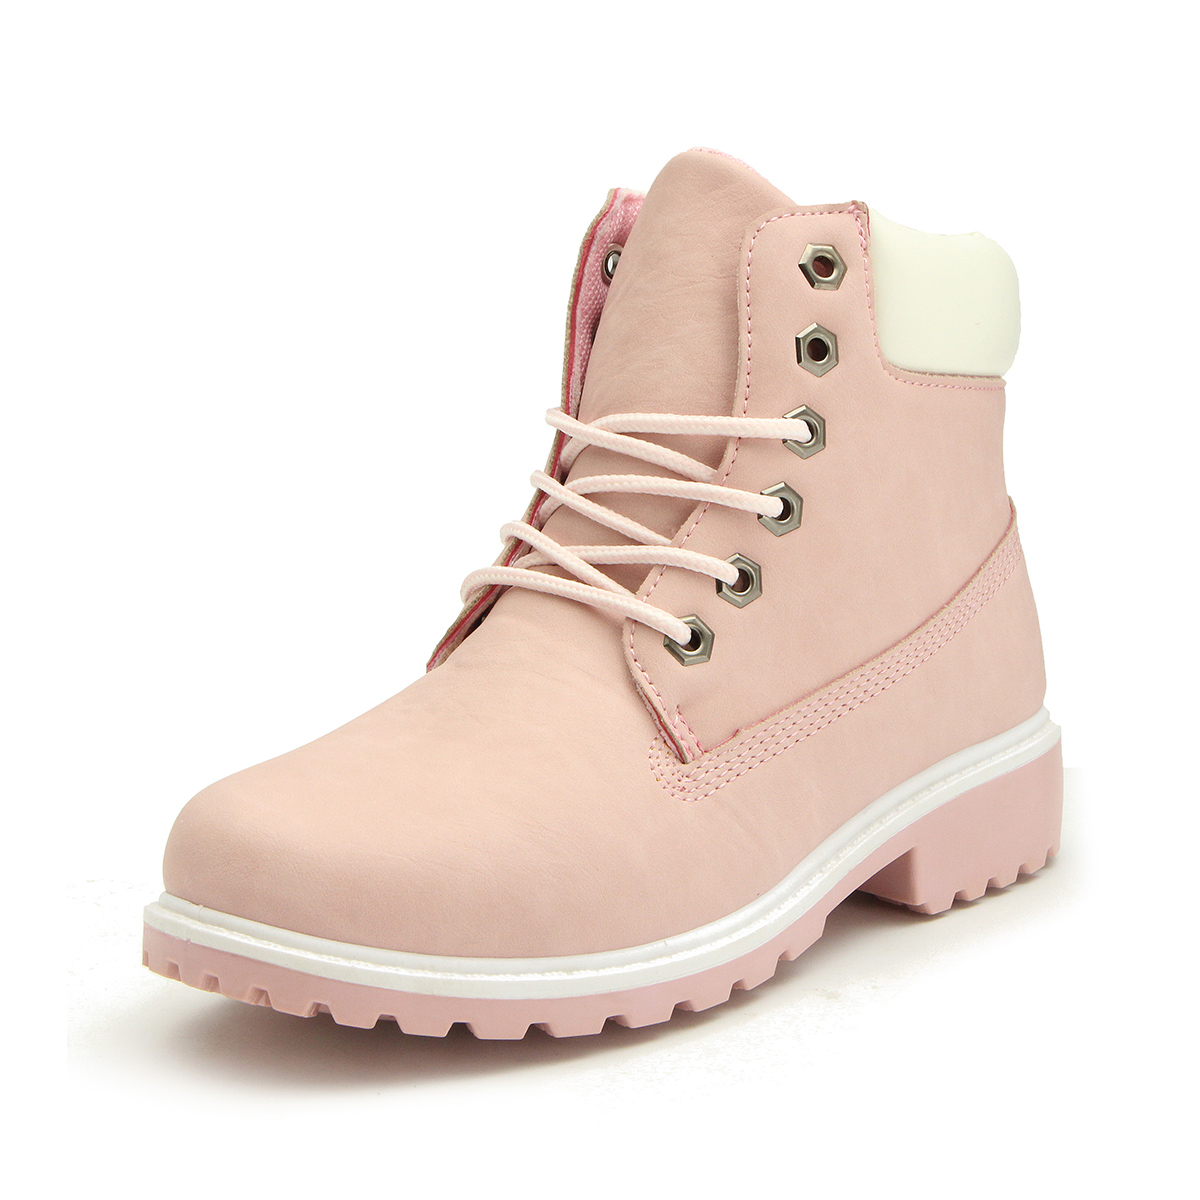 8b55ff59848ef Details about Nis Women's Work Boots Winter Leather Lace up Outdoor  Waterproof Casual Shoes